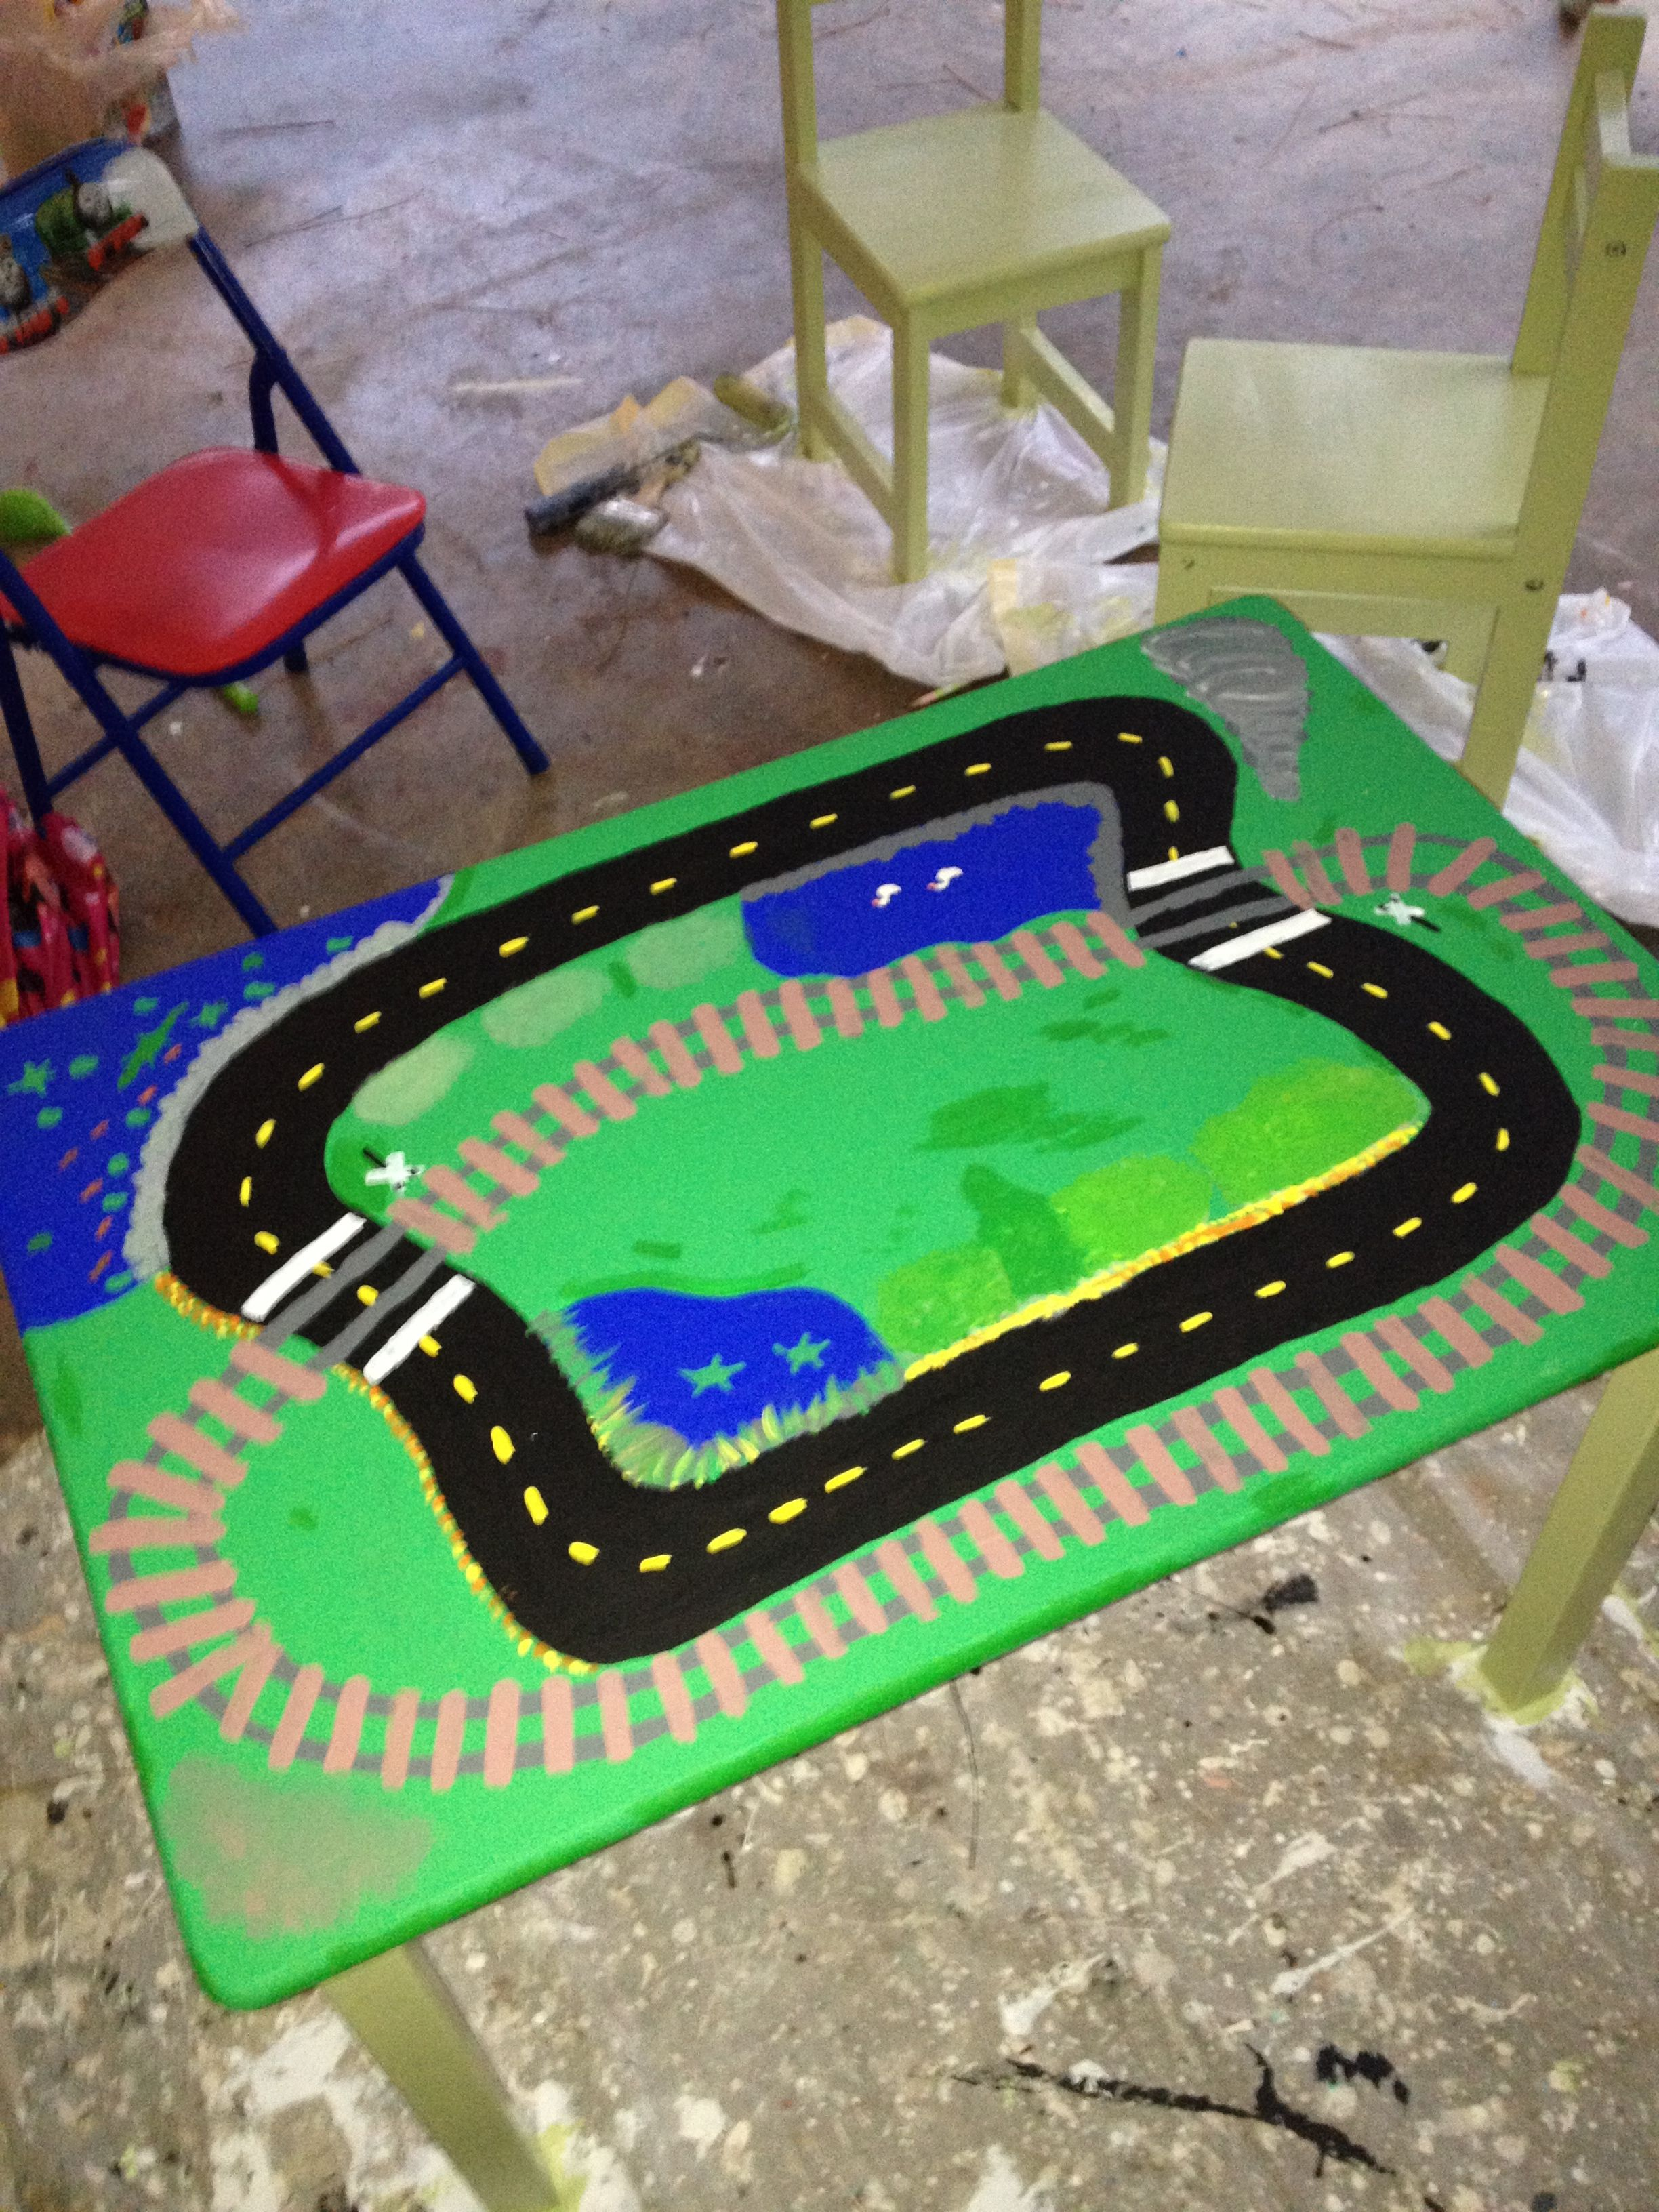 DIY painted car and train track table | DIY projects ...